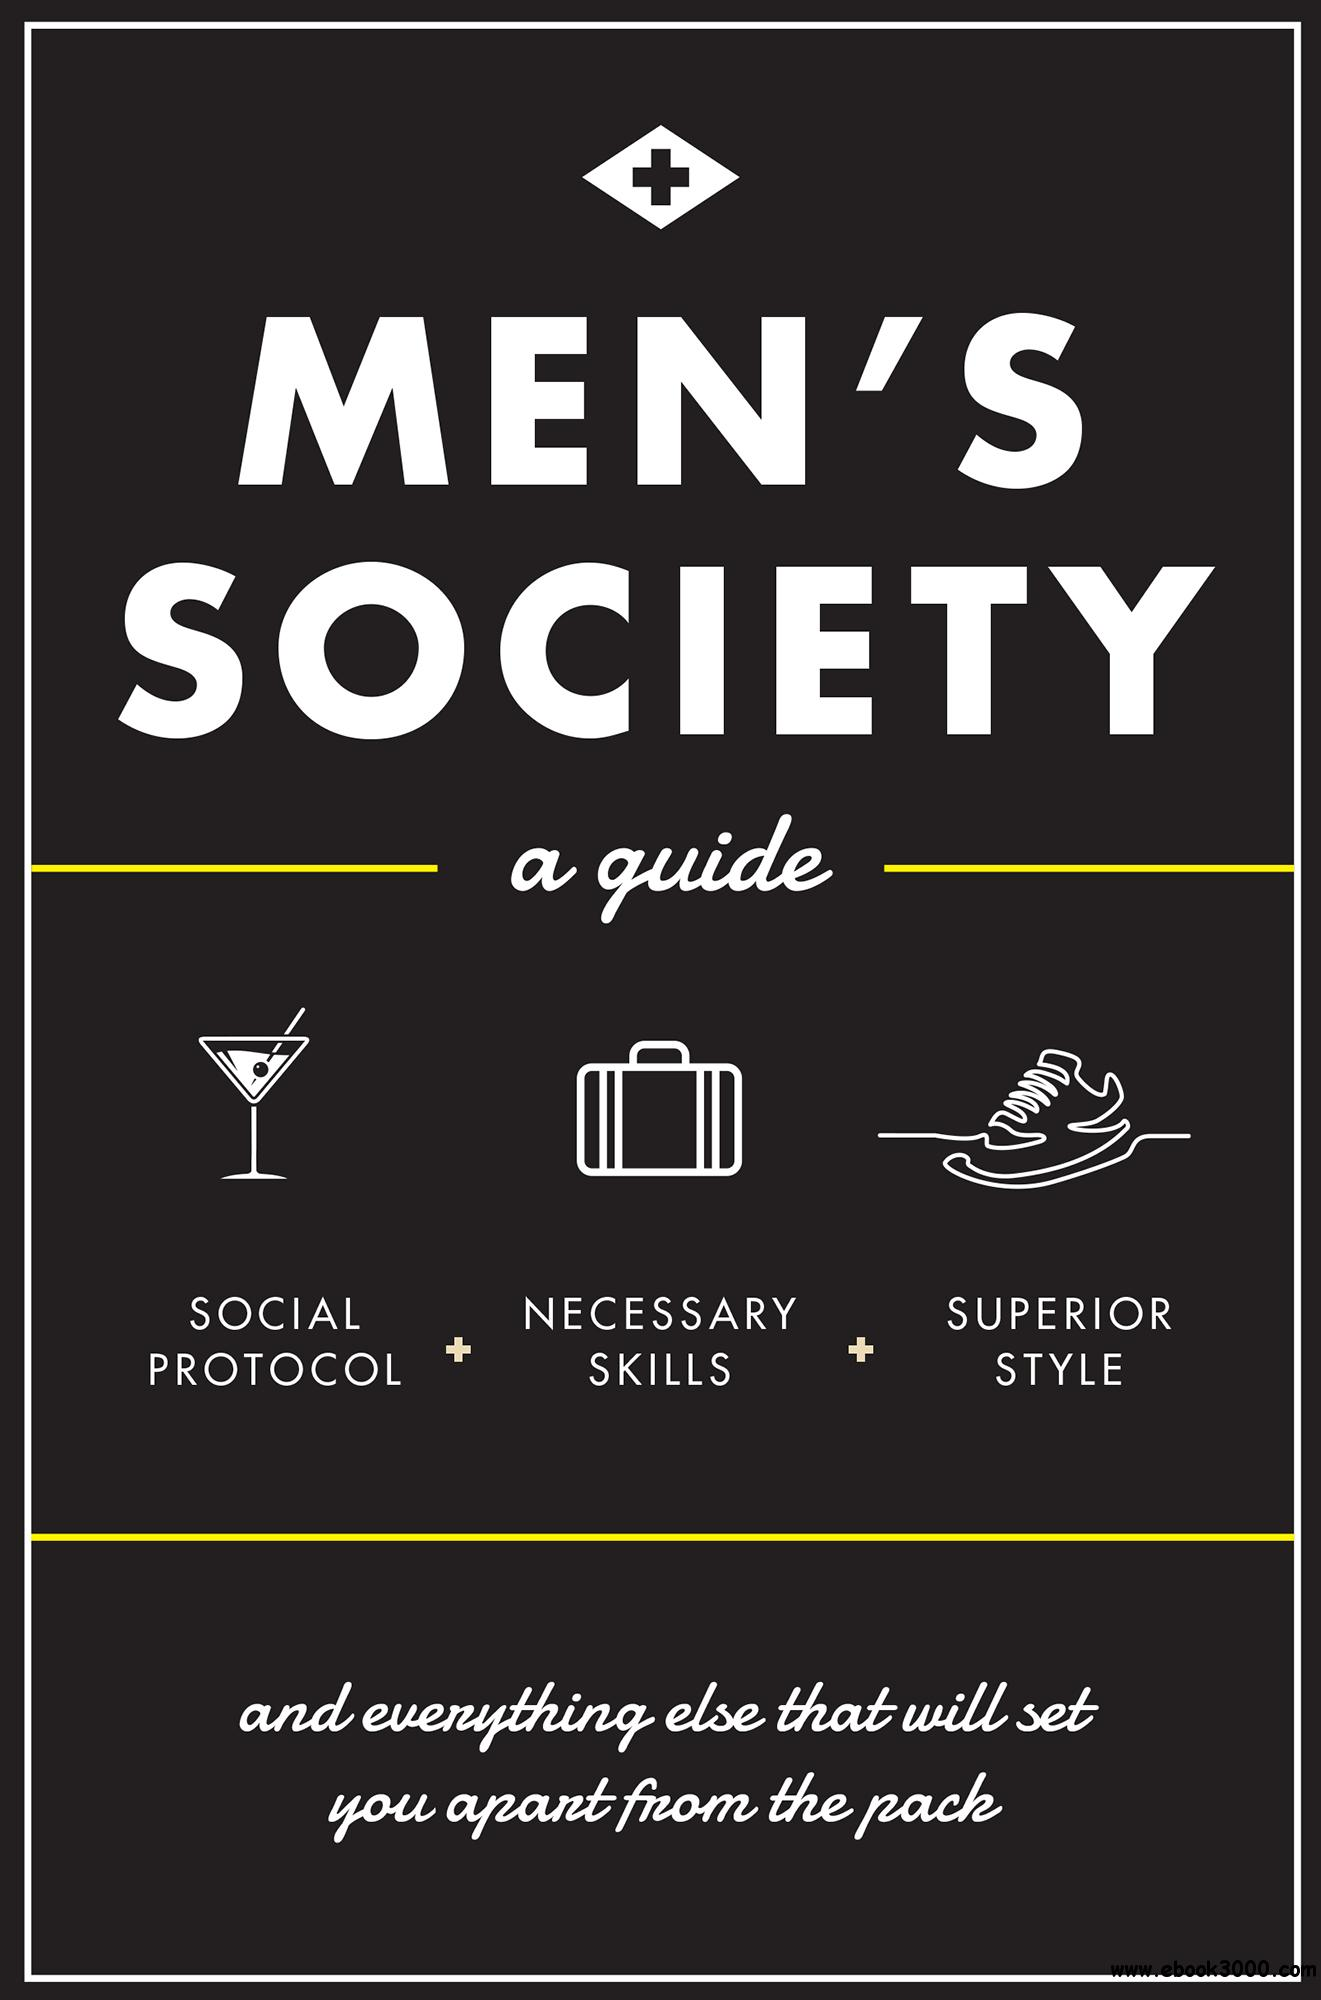 Men's Society: Guide to Social Protocol, Necessary Skills, Superior Style, and Everything Else That Will Set You Apart From...